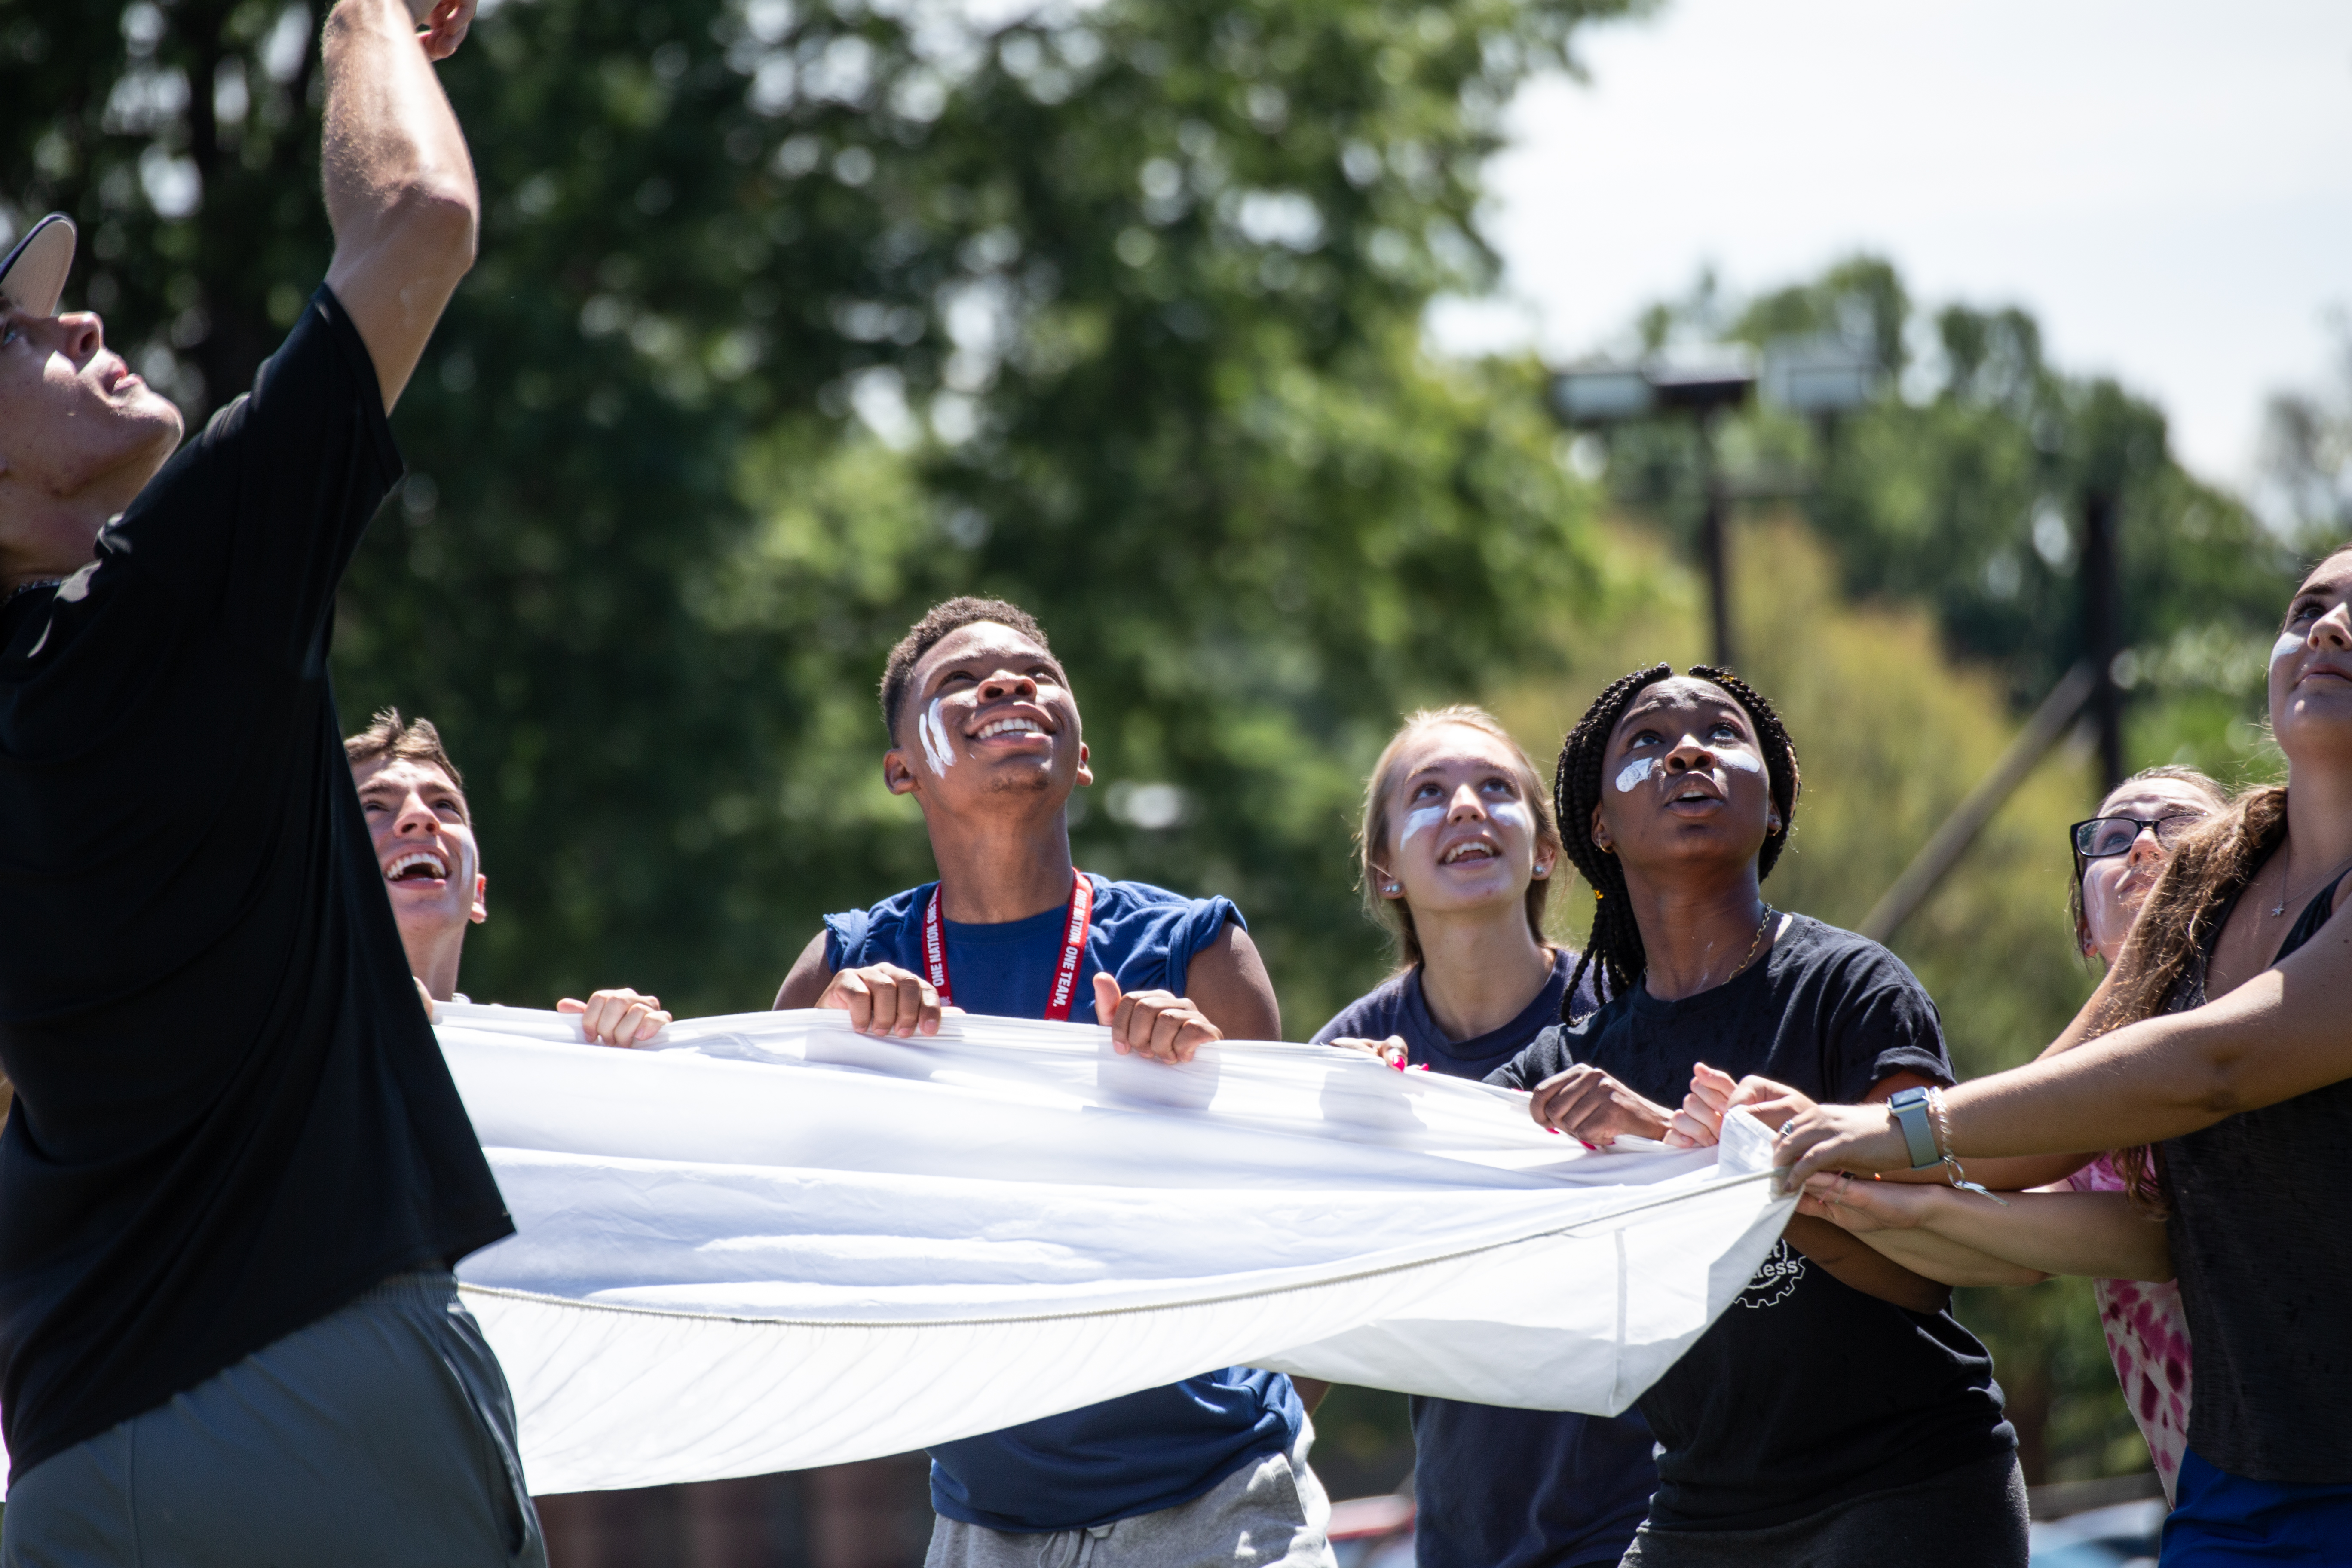 Students Catch a Water Balloon in Orientation Olympics